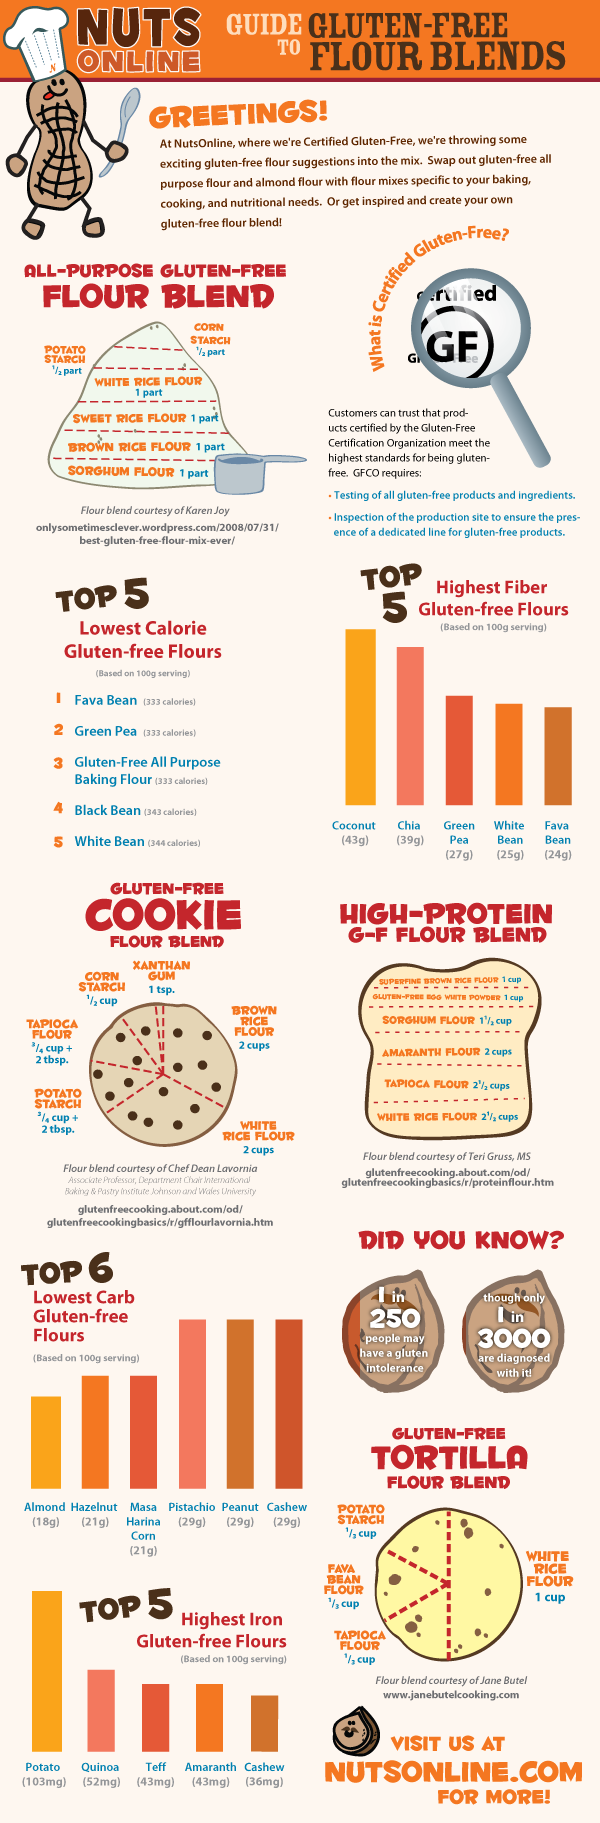 Guide To Gluten-Free Flour Blends [INFOGRAPHIC] | Infographic List